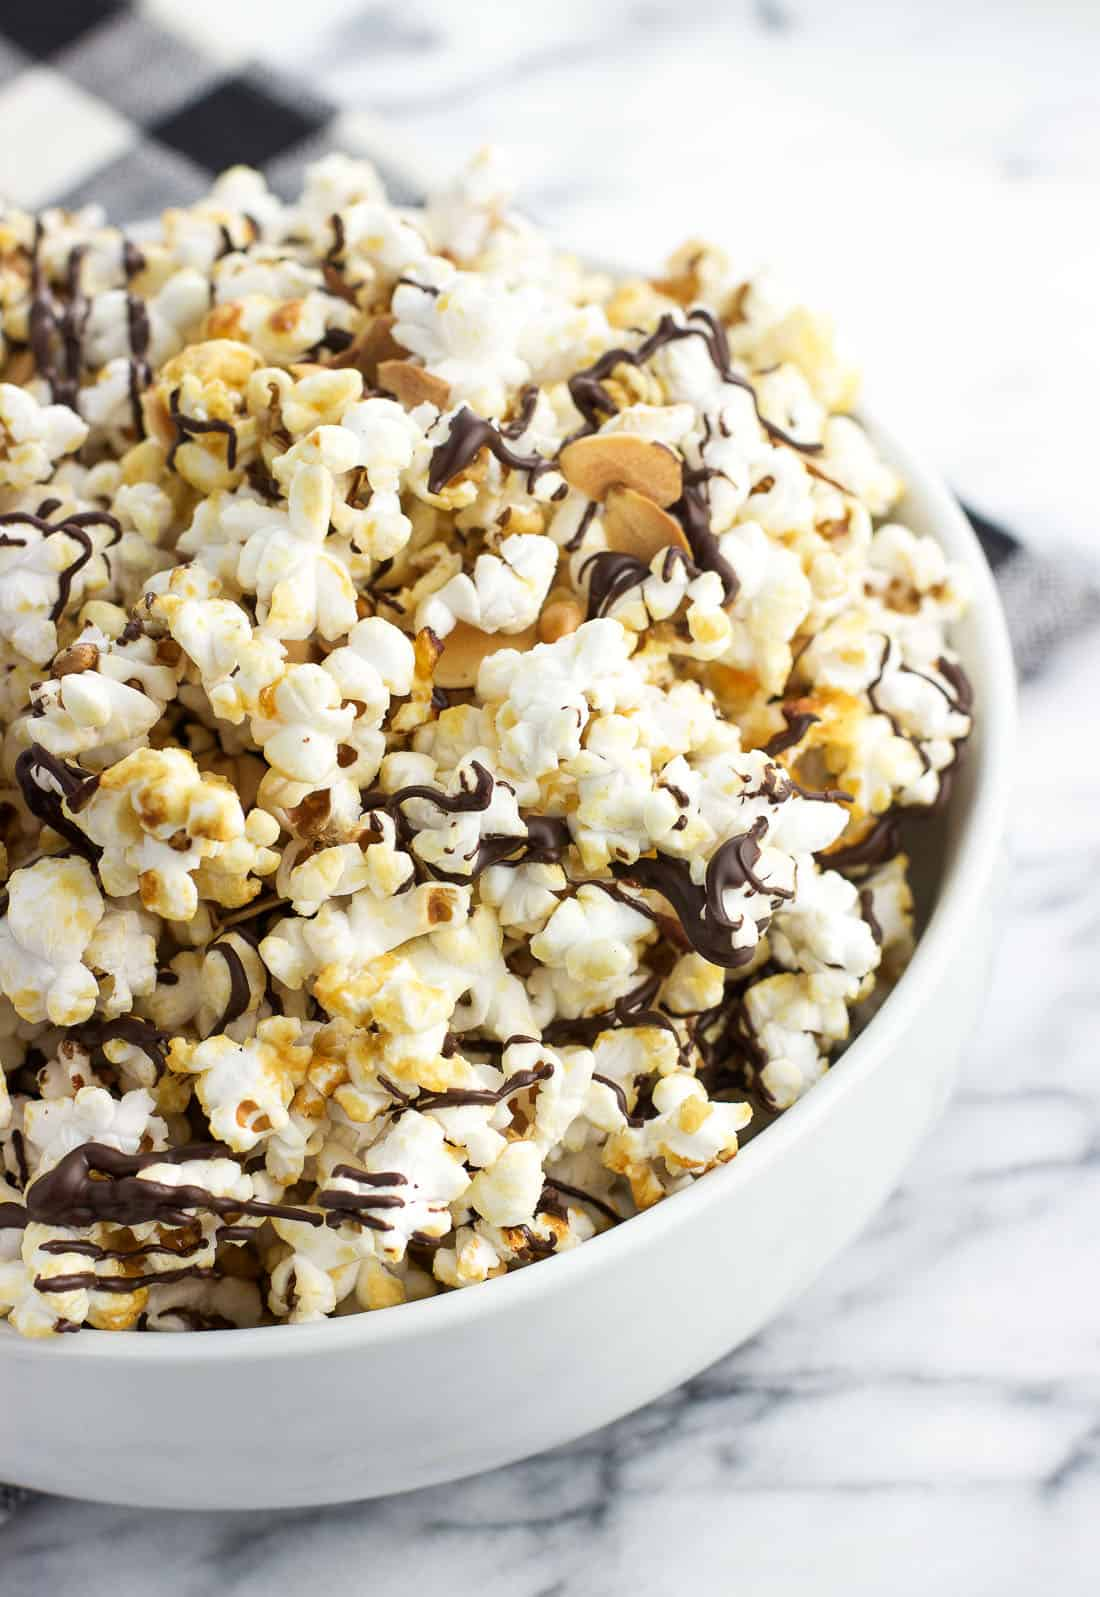 A close-up of chocolate drizzled popcorn in a serving bowl